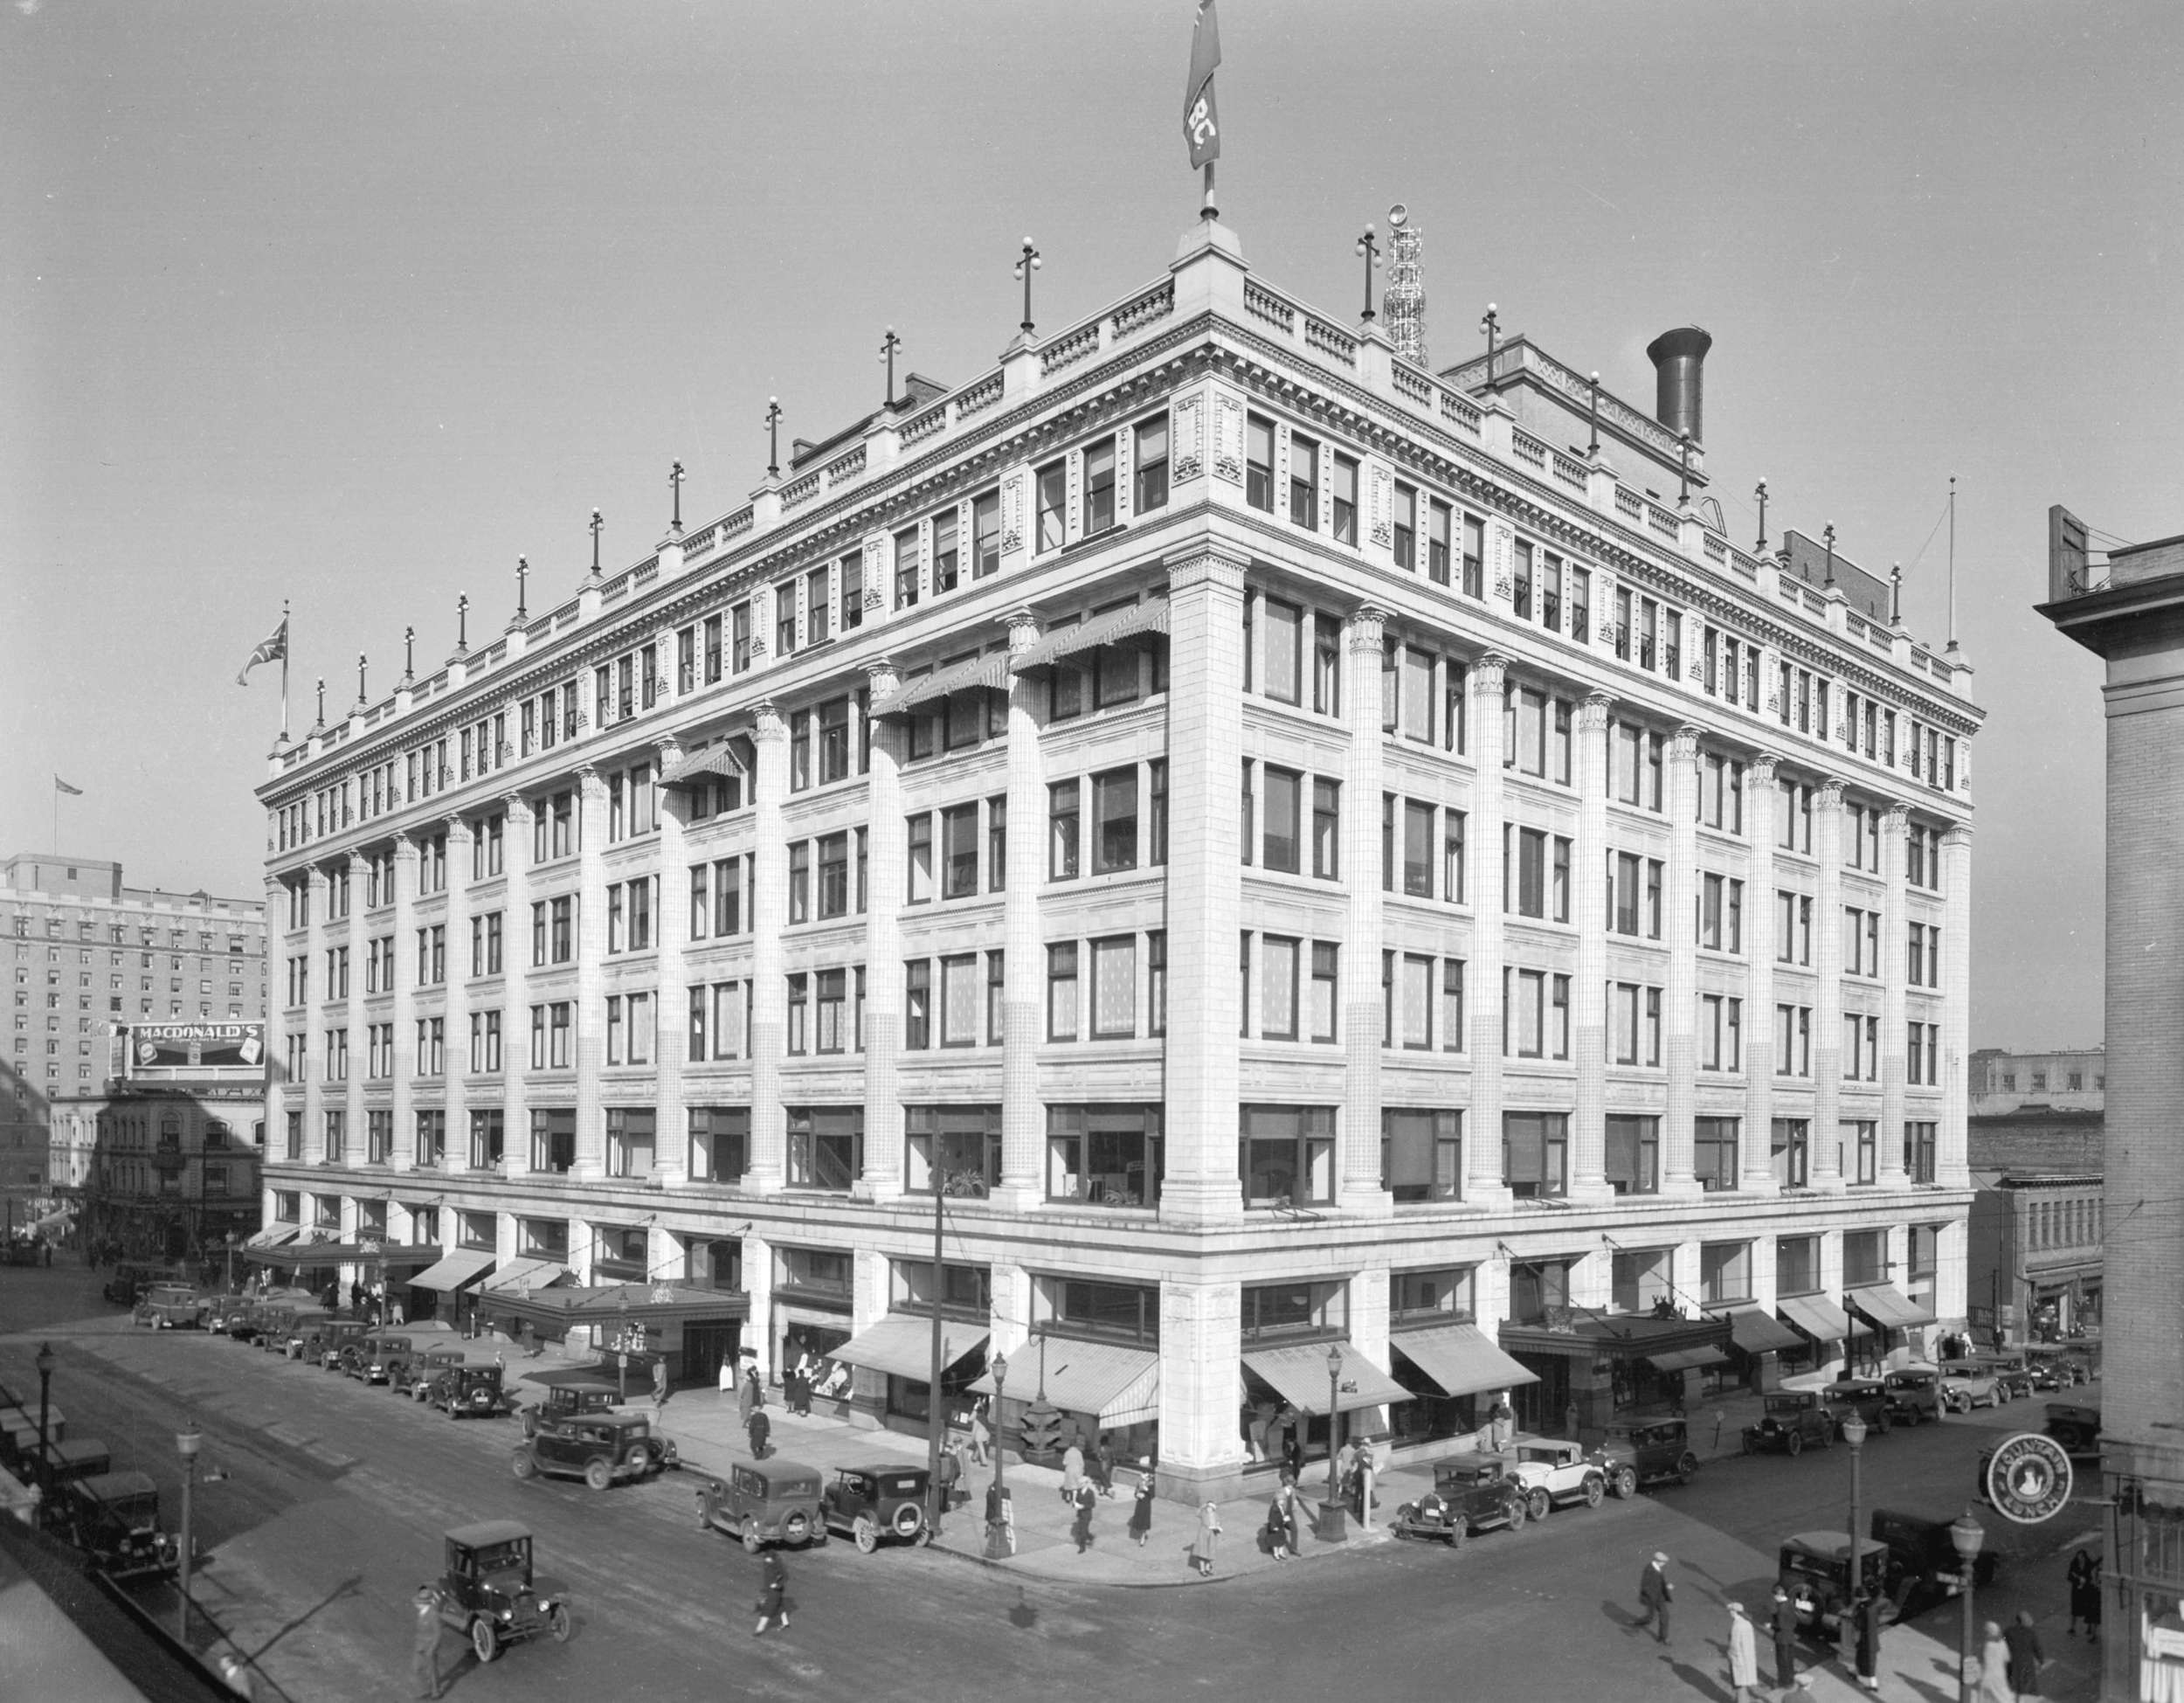 By 1931, the 1893 red brick store had been demolished and the new facade dominated Georgia Street. The store would expand twice more to 650,000 square feet by 1949 (HBC archives)